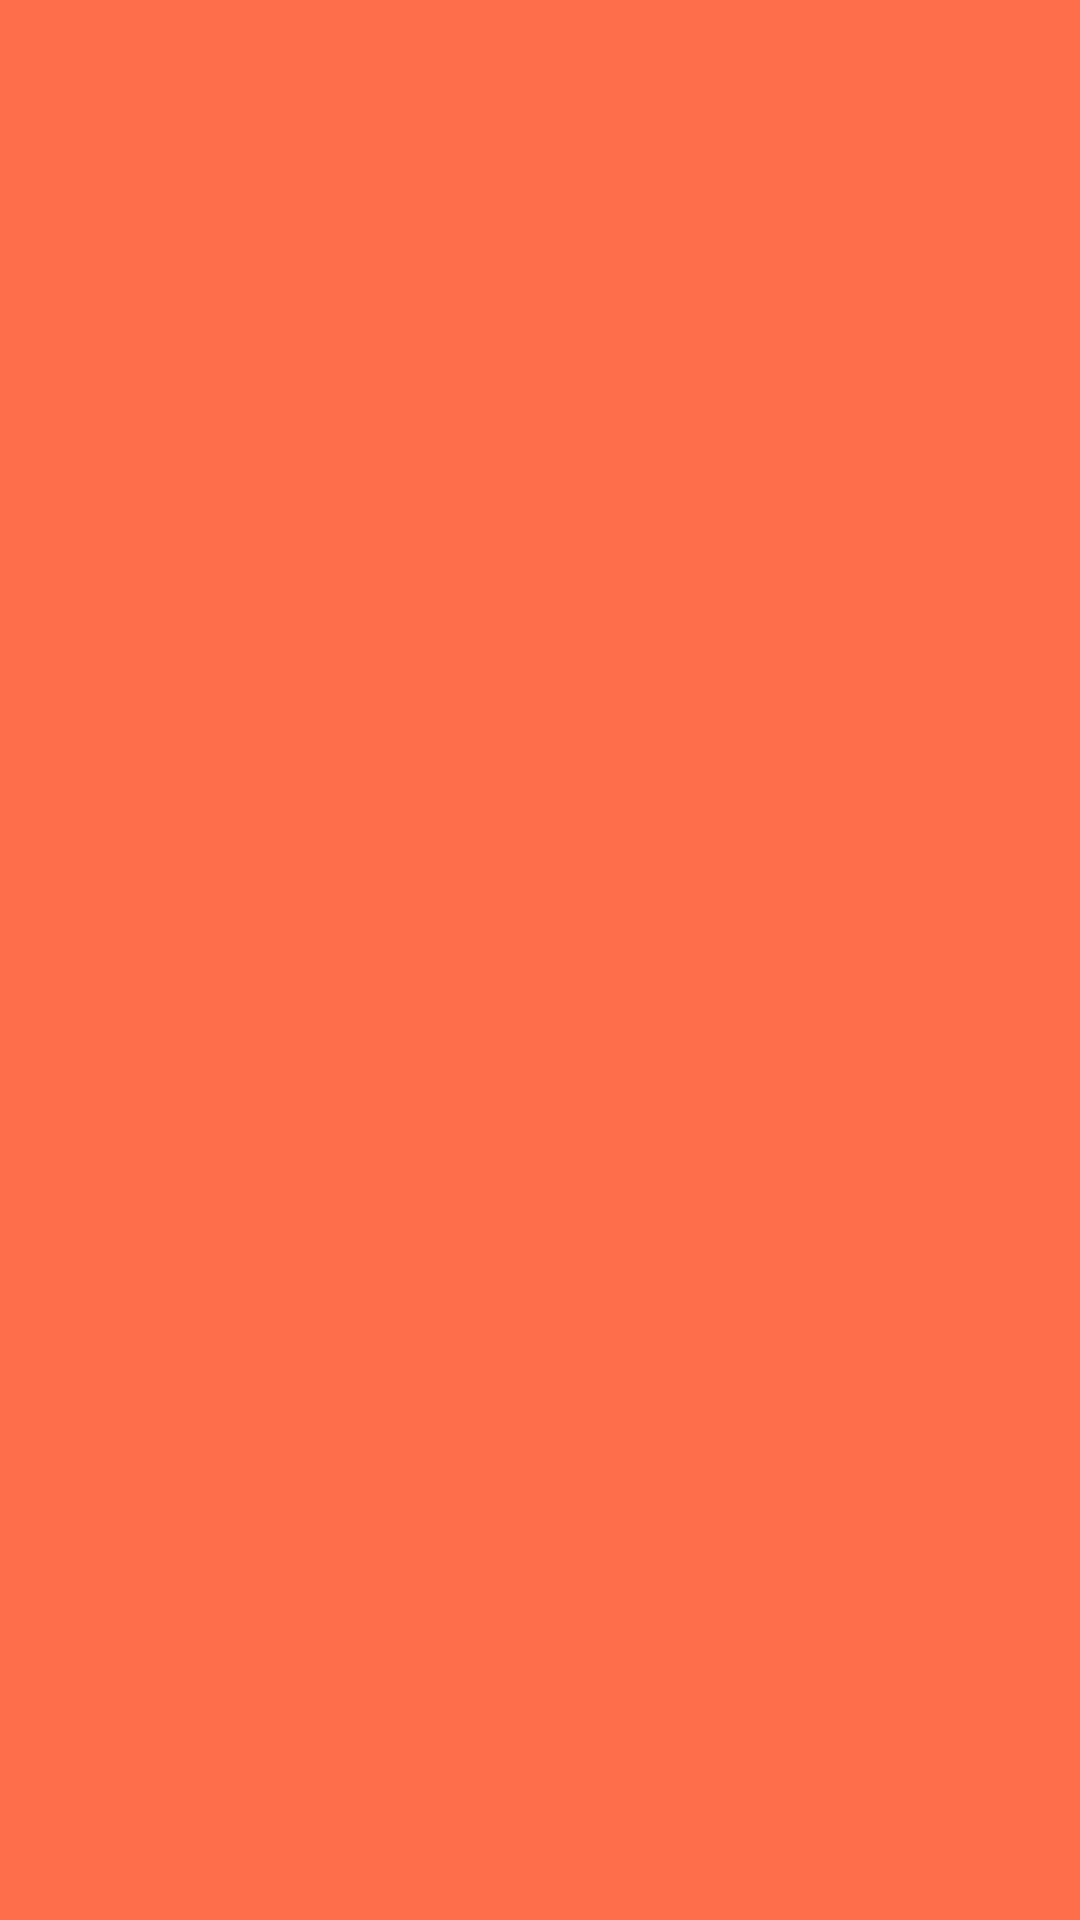 1080x1920 Outrageous Orange Solid Color Background